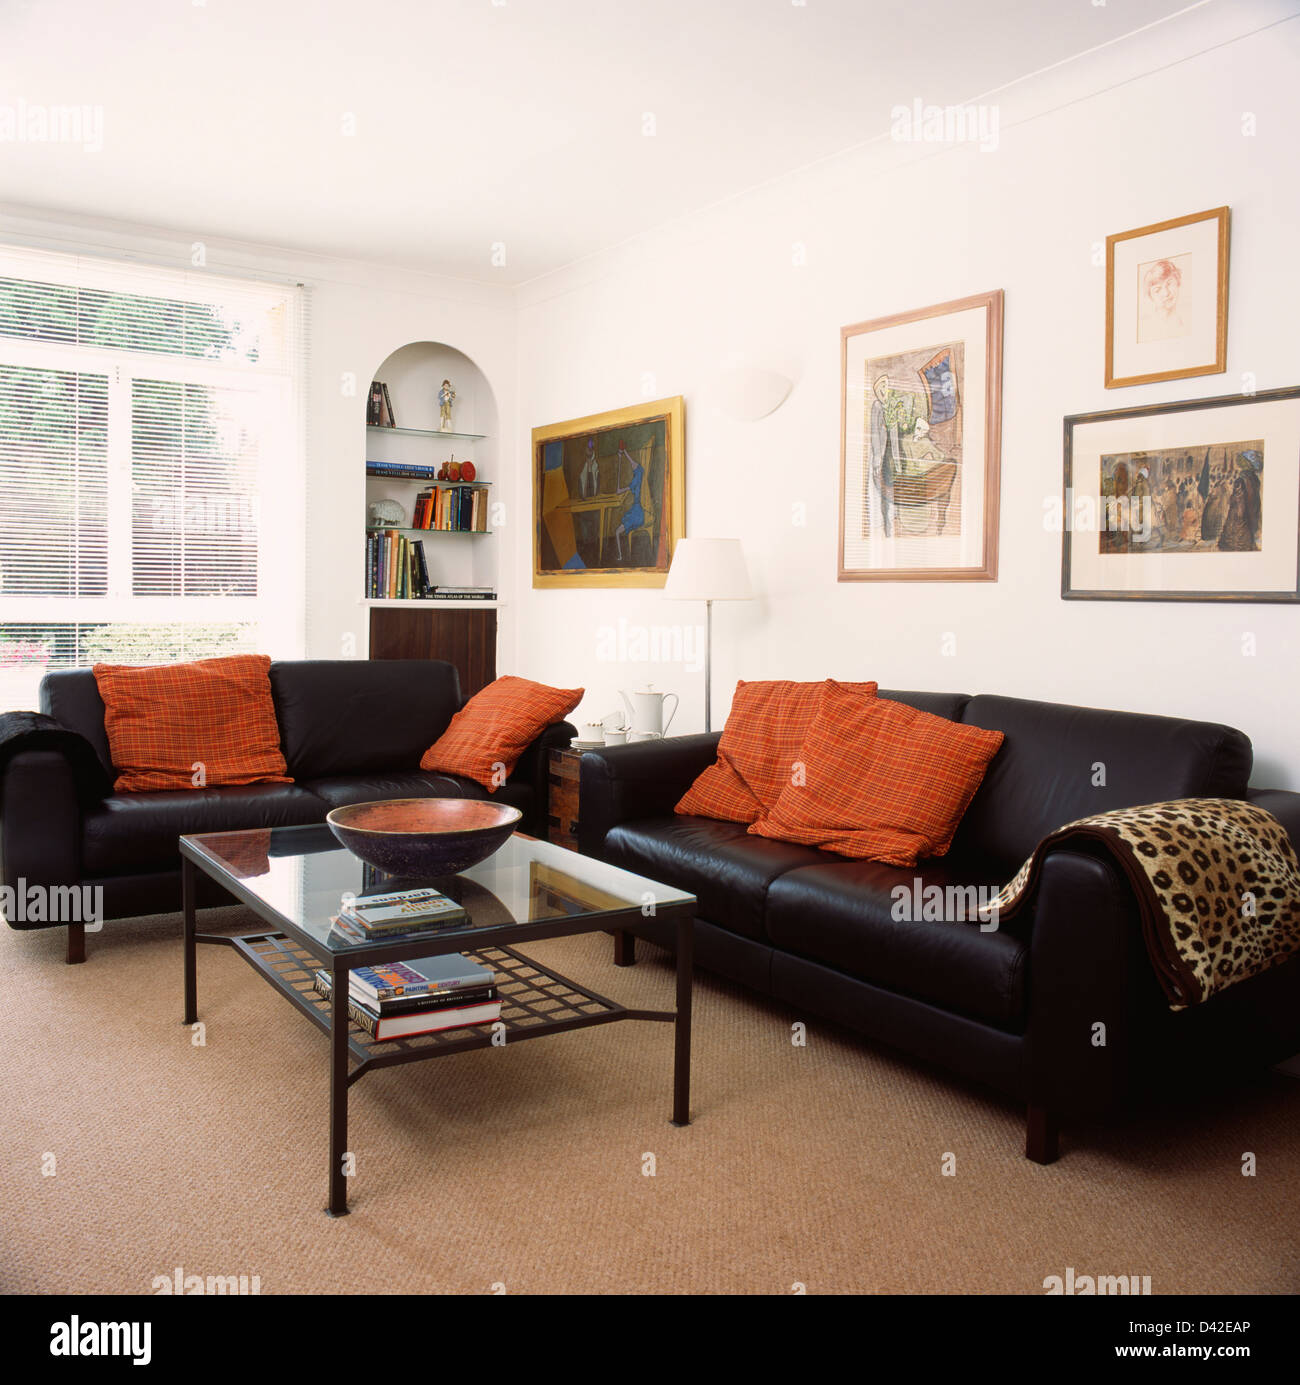 Orange Cushions On Black Leather Sofas In Living Room With